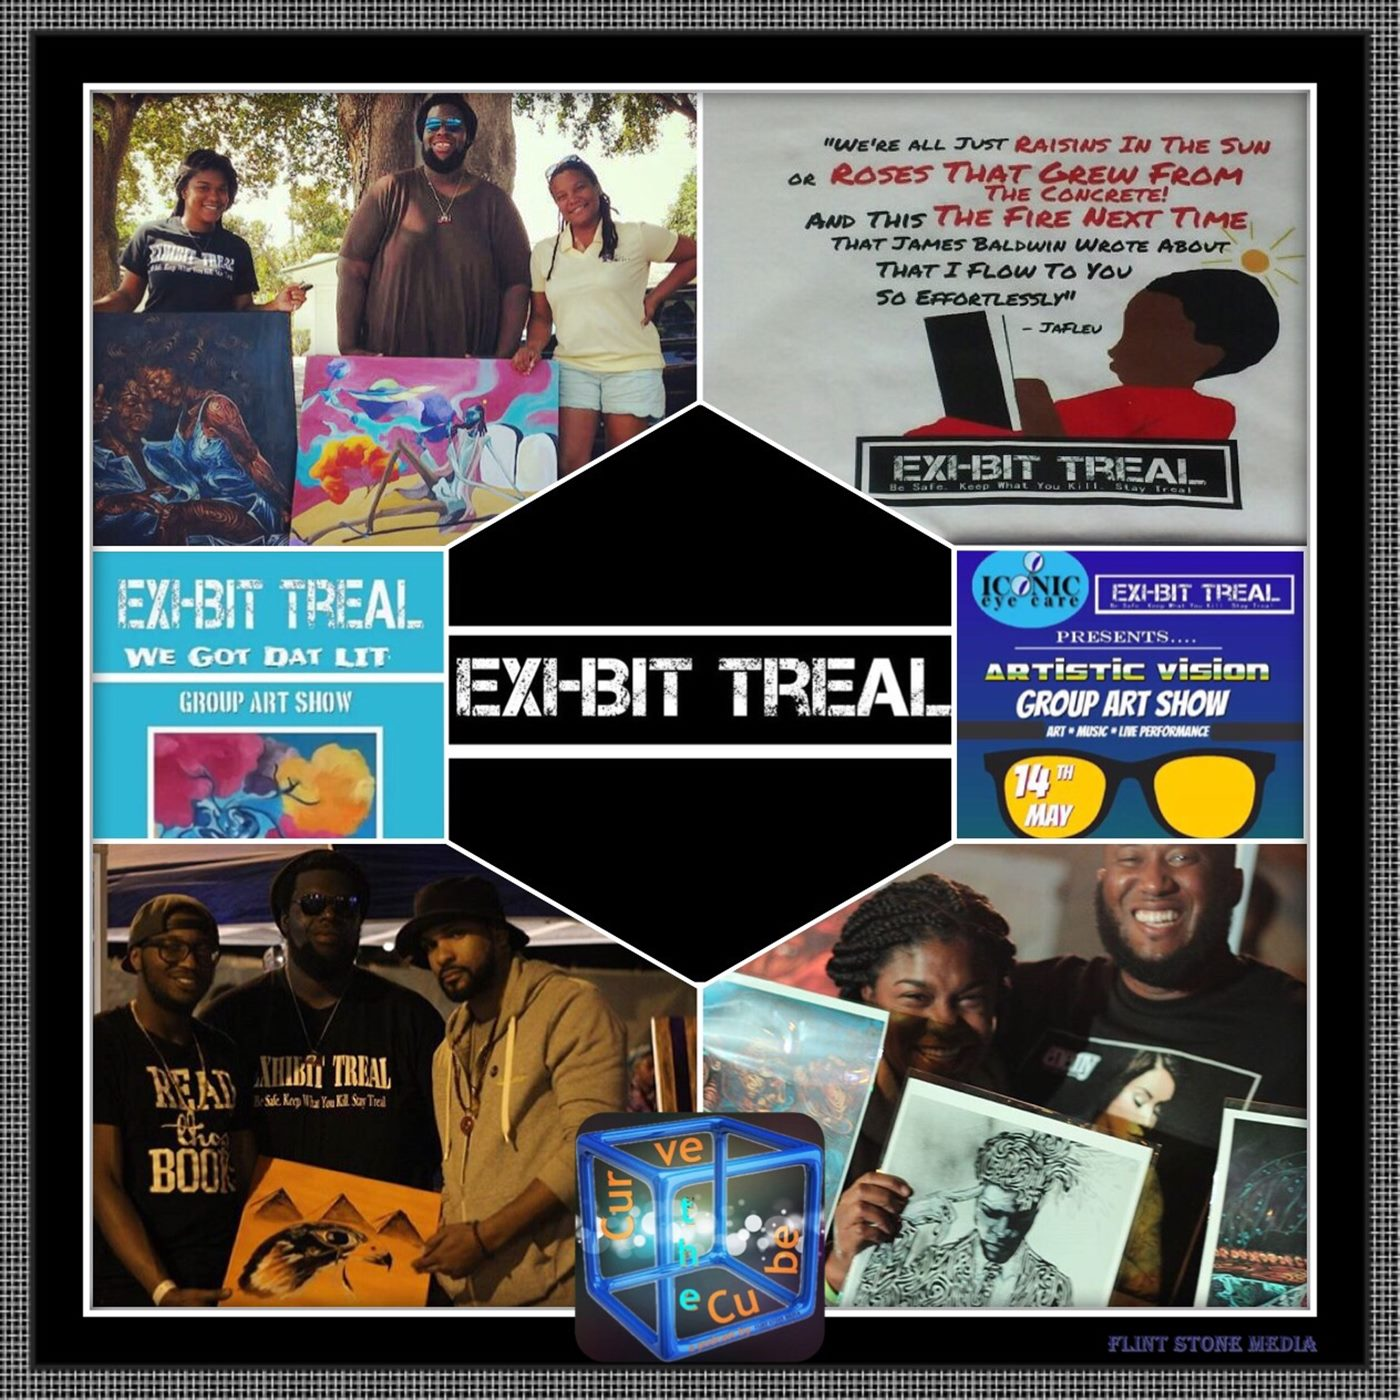 #69 – ARTISTS AND COMMUNITY ORGANIZERS – Exhibit Treal – 2016-03-26